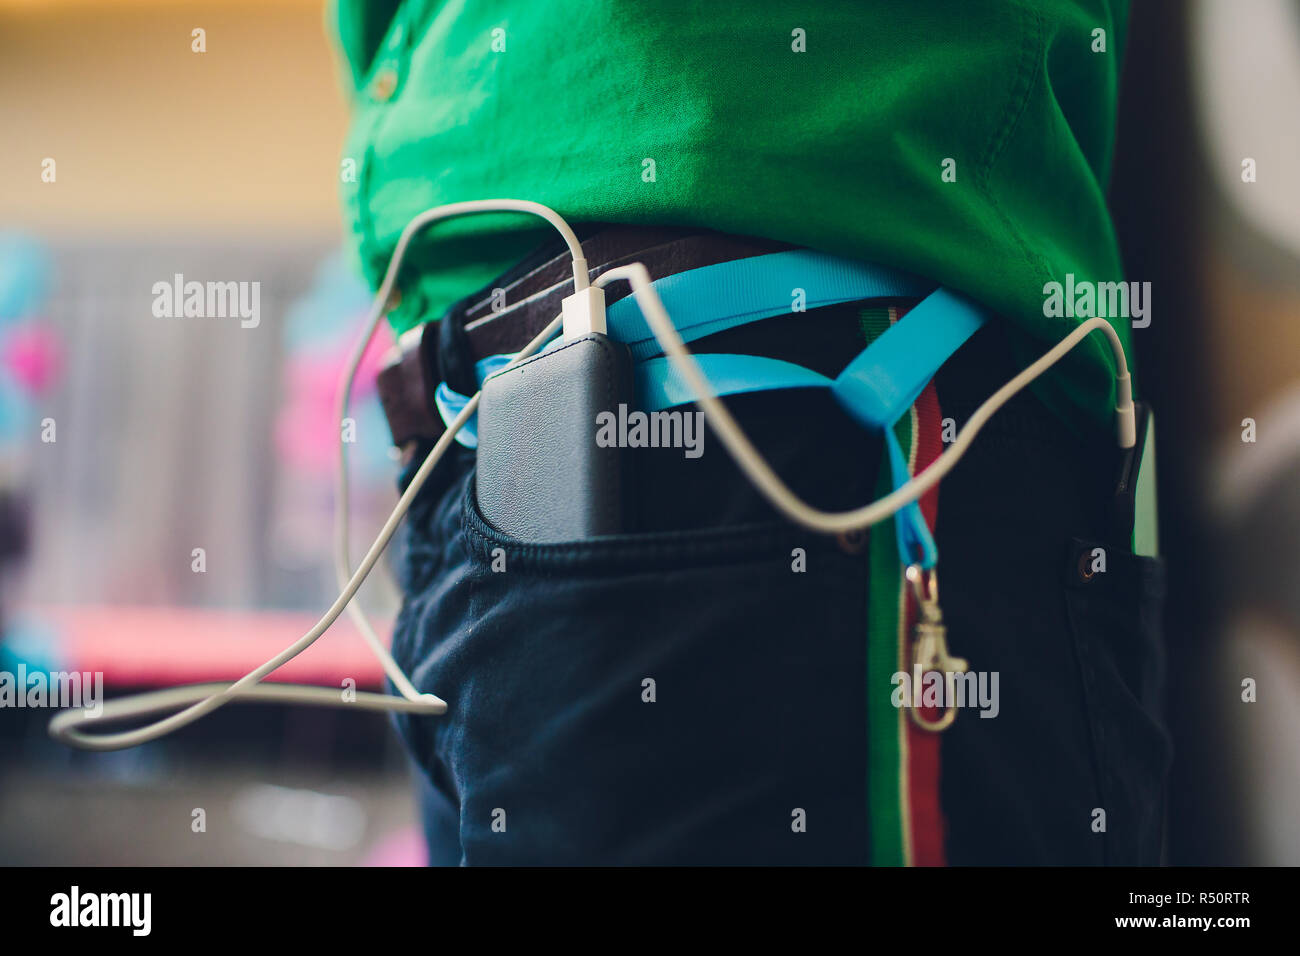 power bank lies in a back pocket of jeans, in the other is a mobile phone that is charged. Stock Photo